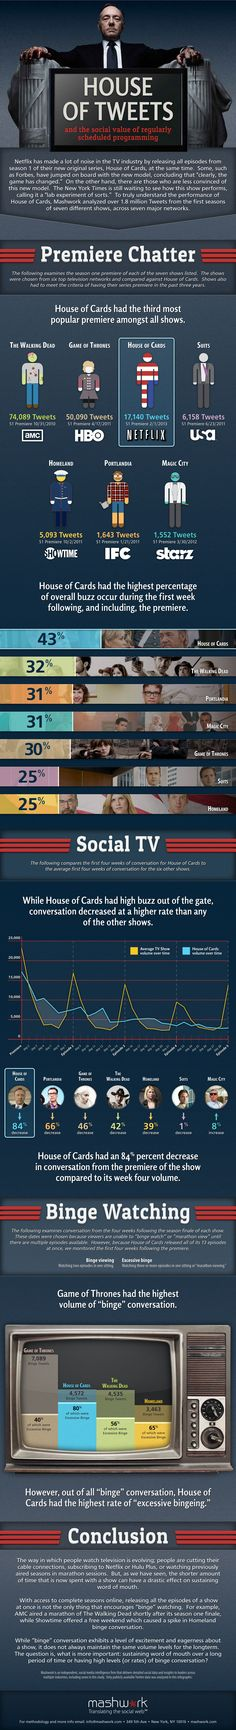 """Netflix released the entire first season of its original series """"House of Cards,"""" so how does that affect overall buzz? Content Marketing, Internet Marketing, Social Media Marketing, Digital Marketing, Best Business Ideas, Home Based Business, Visualisation, Data Visualization, Social Tv"""